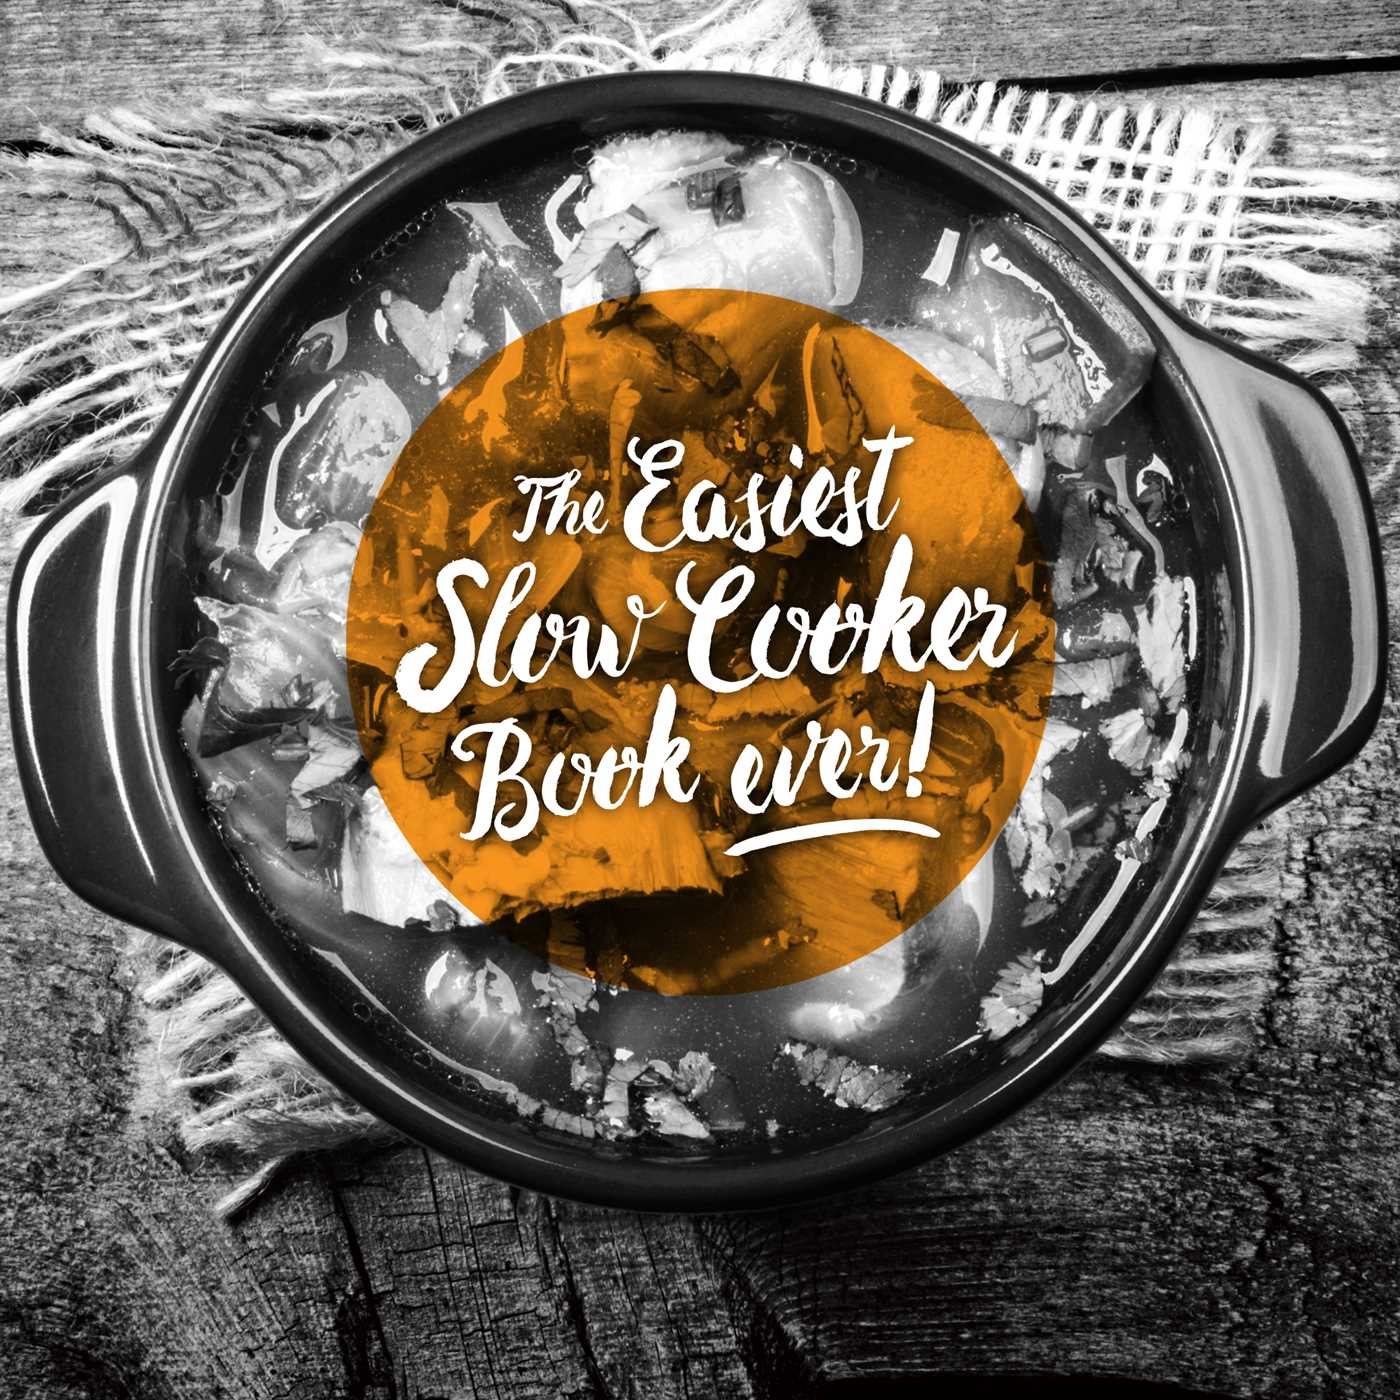 Easiest ever slow cooker recipe book 9780994447807 hr